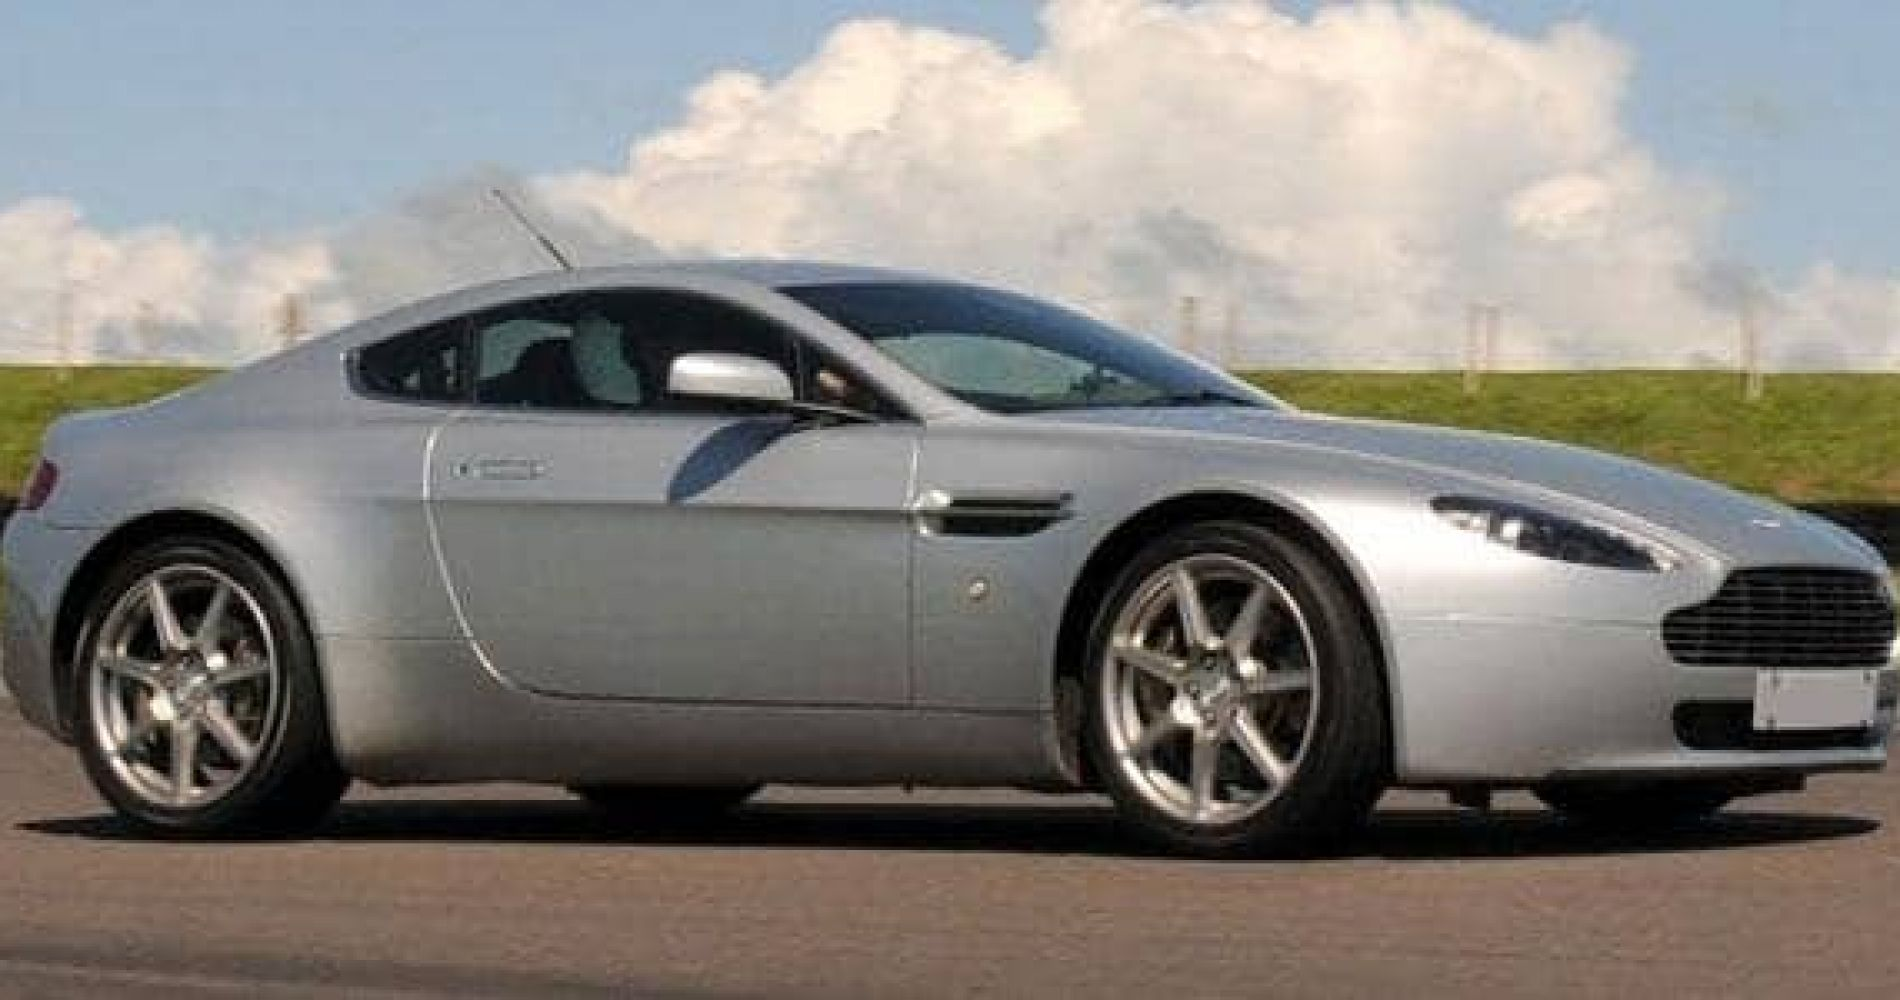 Thrilling Aston Martin V8 Vantage Experience in United Kingdom